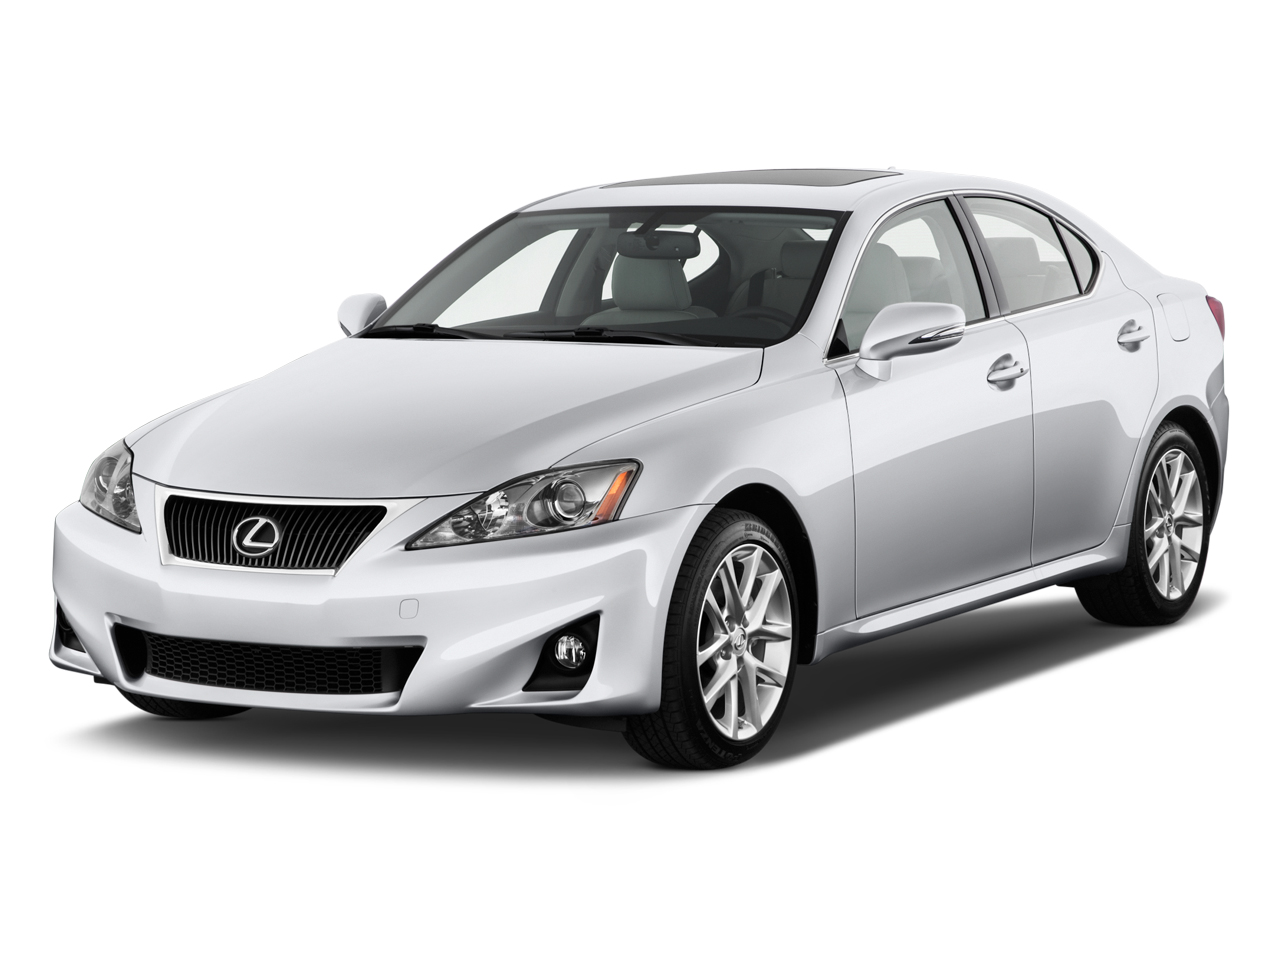 2012 lexus is 250 review ratings specs prices and. Black Bedroom Furniture Sets. Home Design Ideas